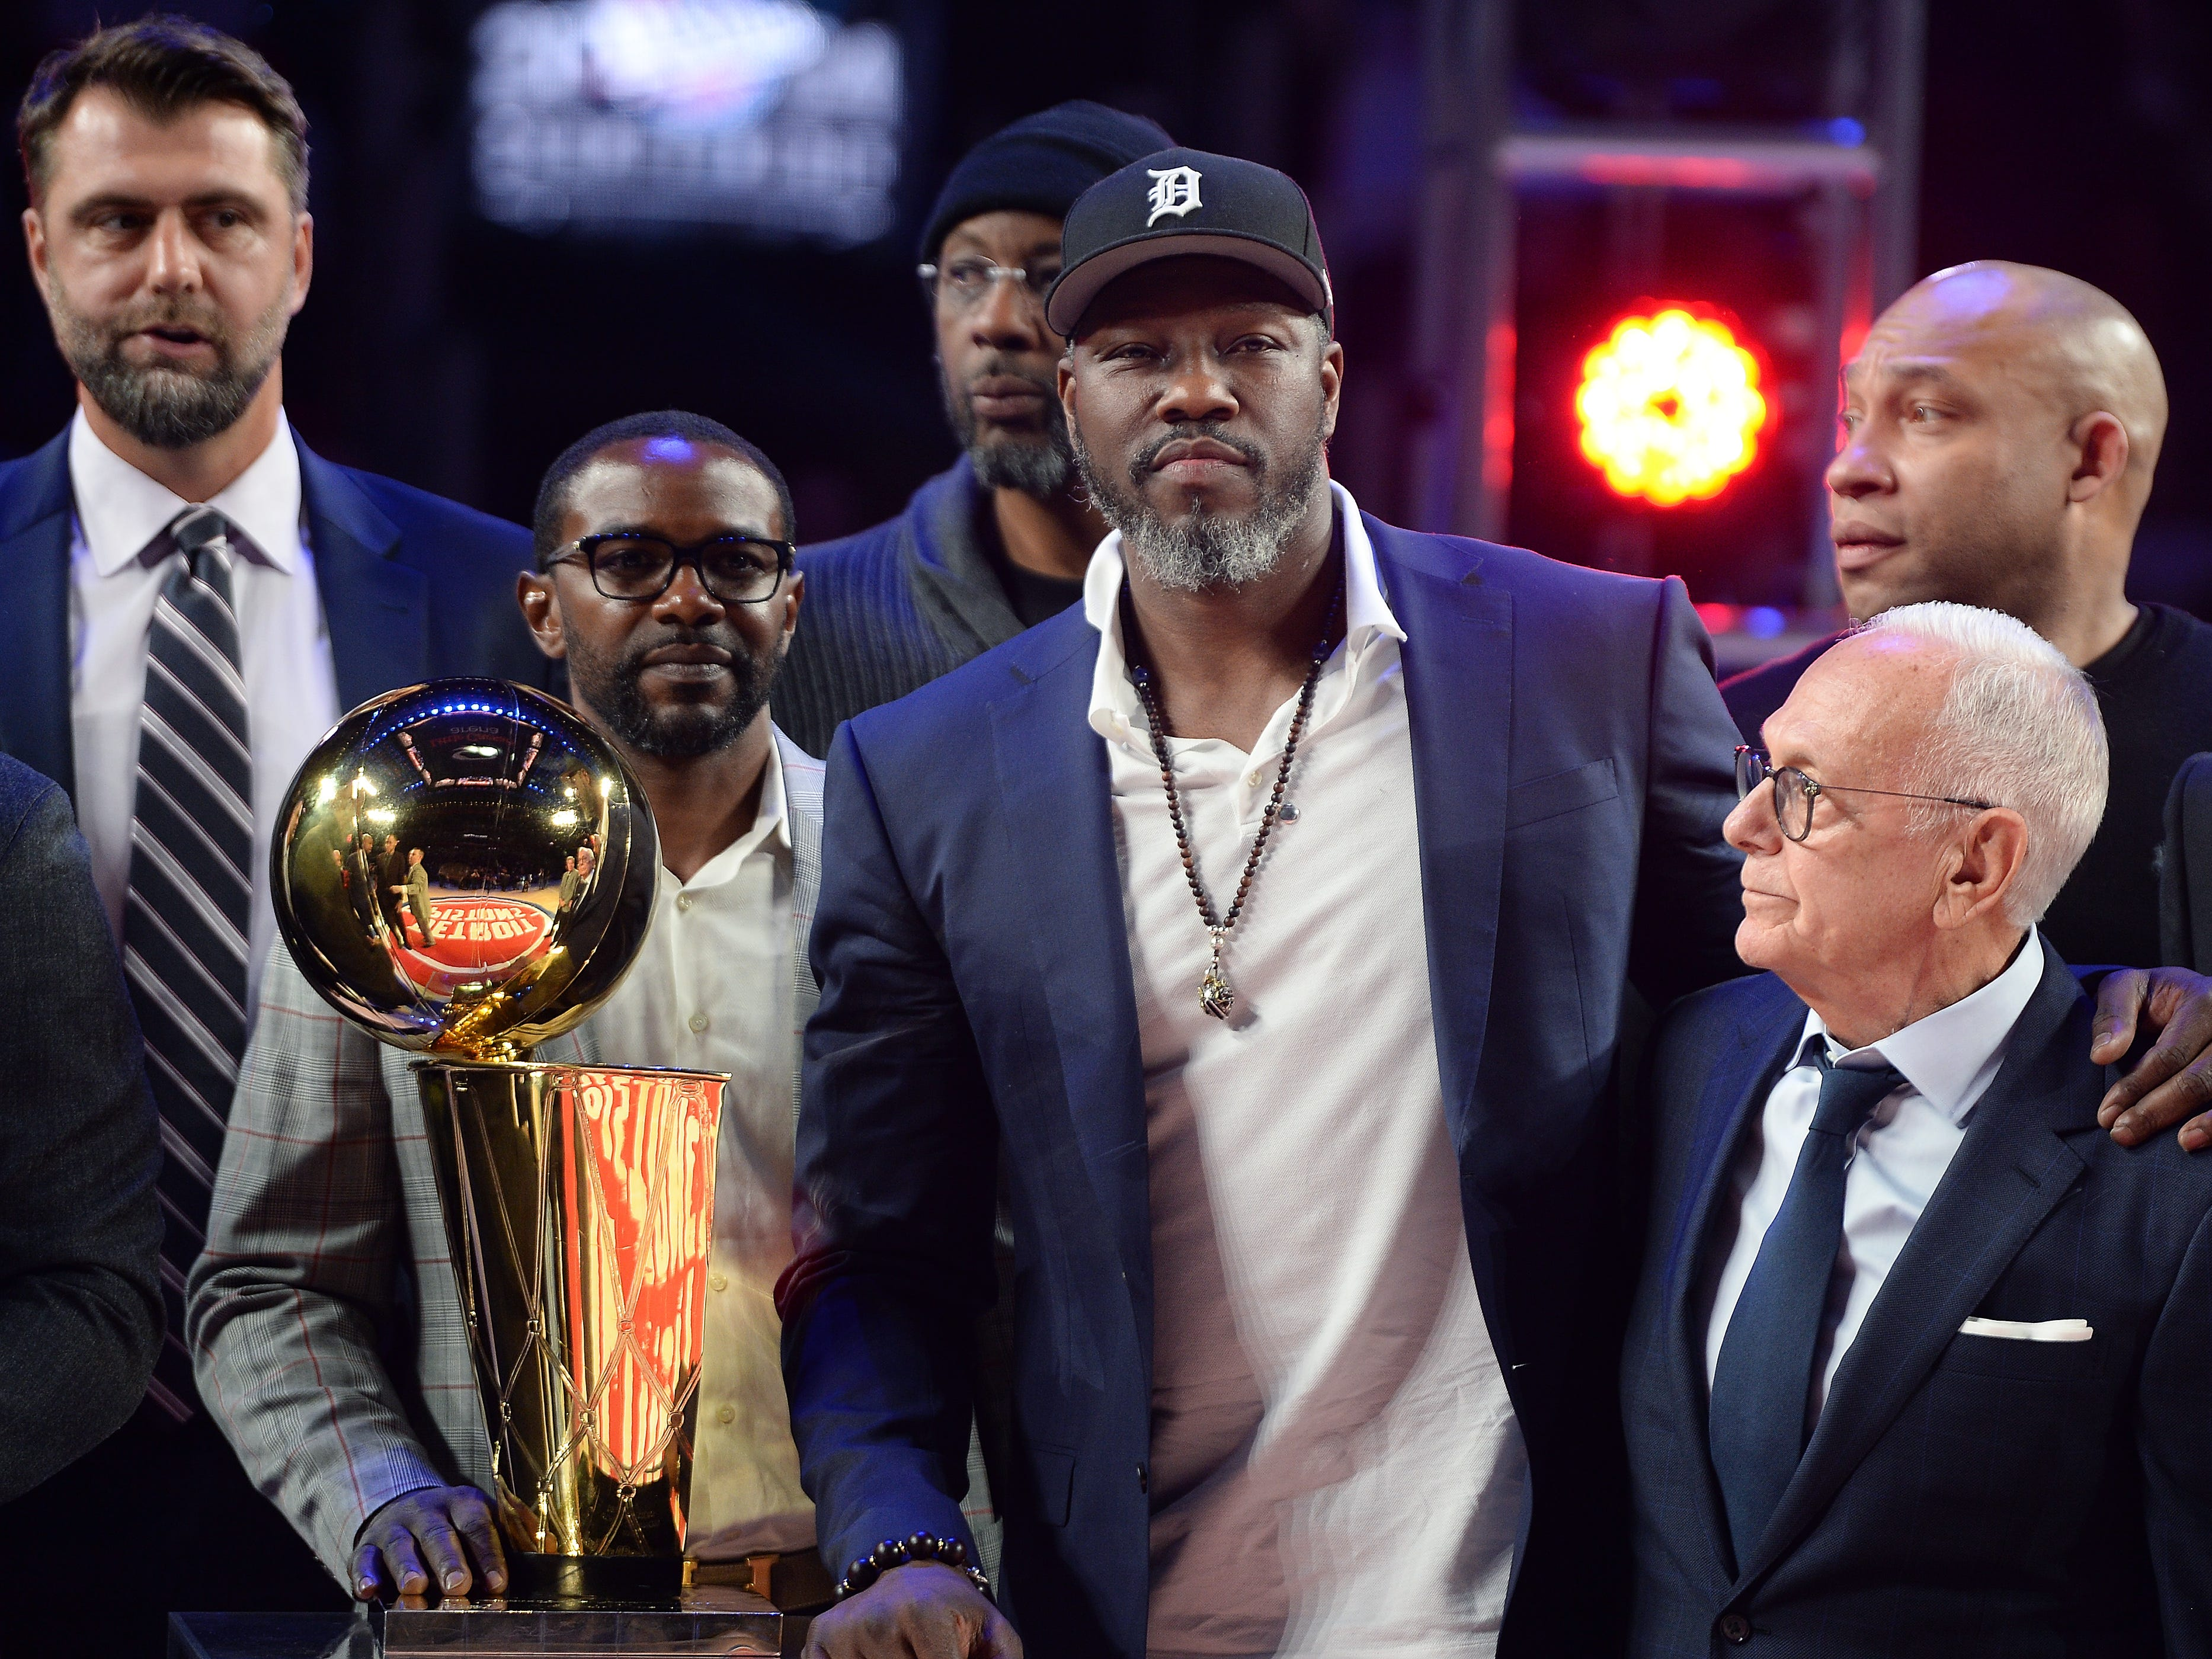 From left, Former Pistons Mike James, Ben Wallace and head coach Larry Brown during the ceremony to honor the 2004 Championship team.